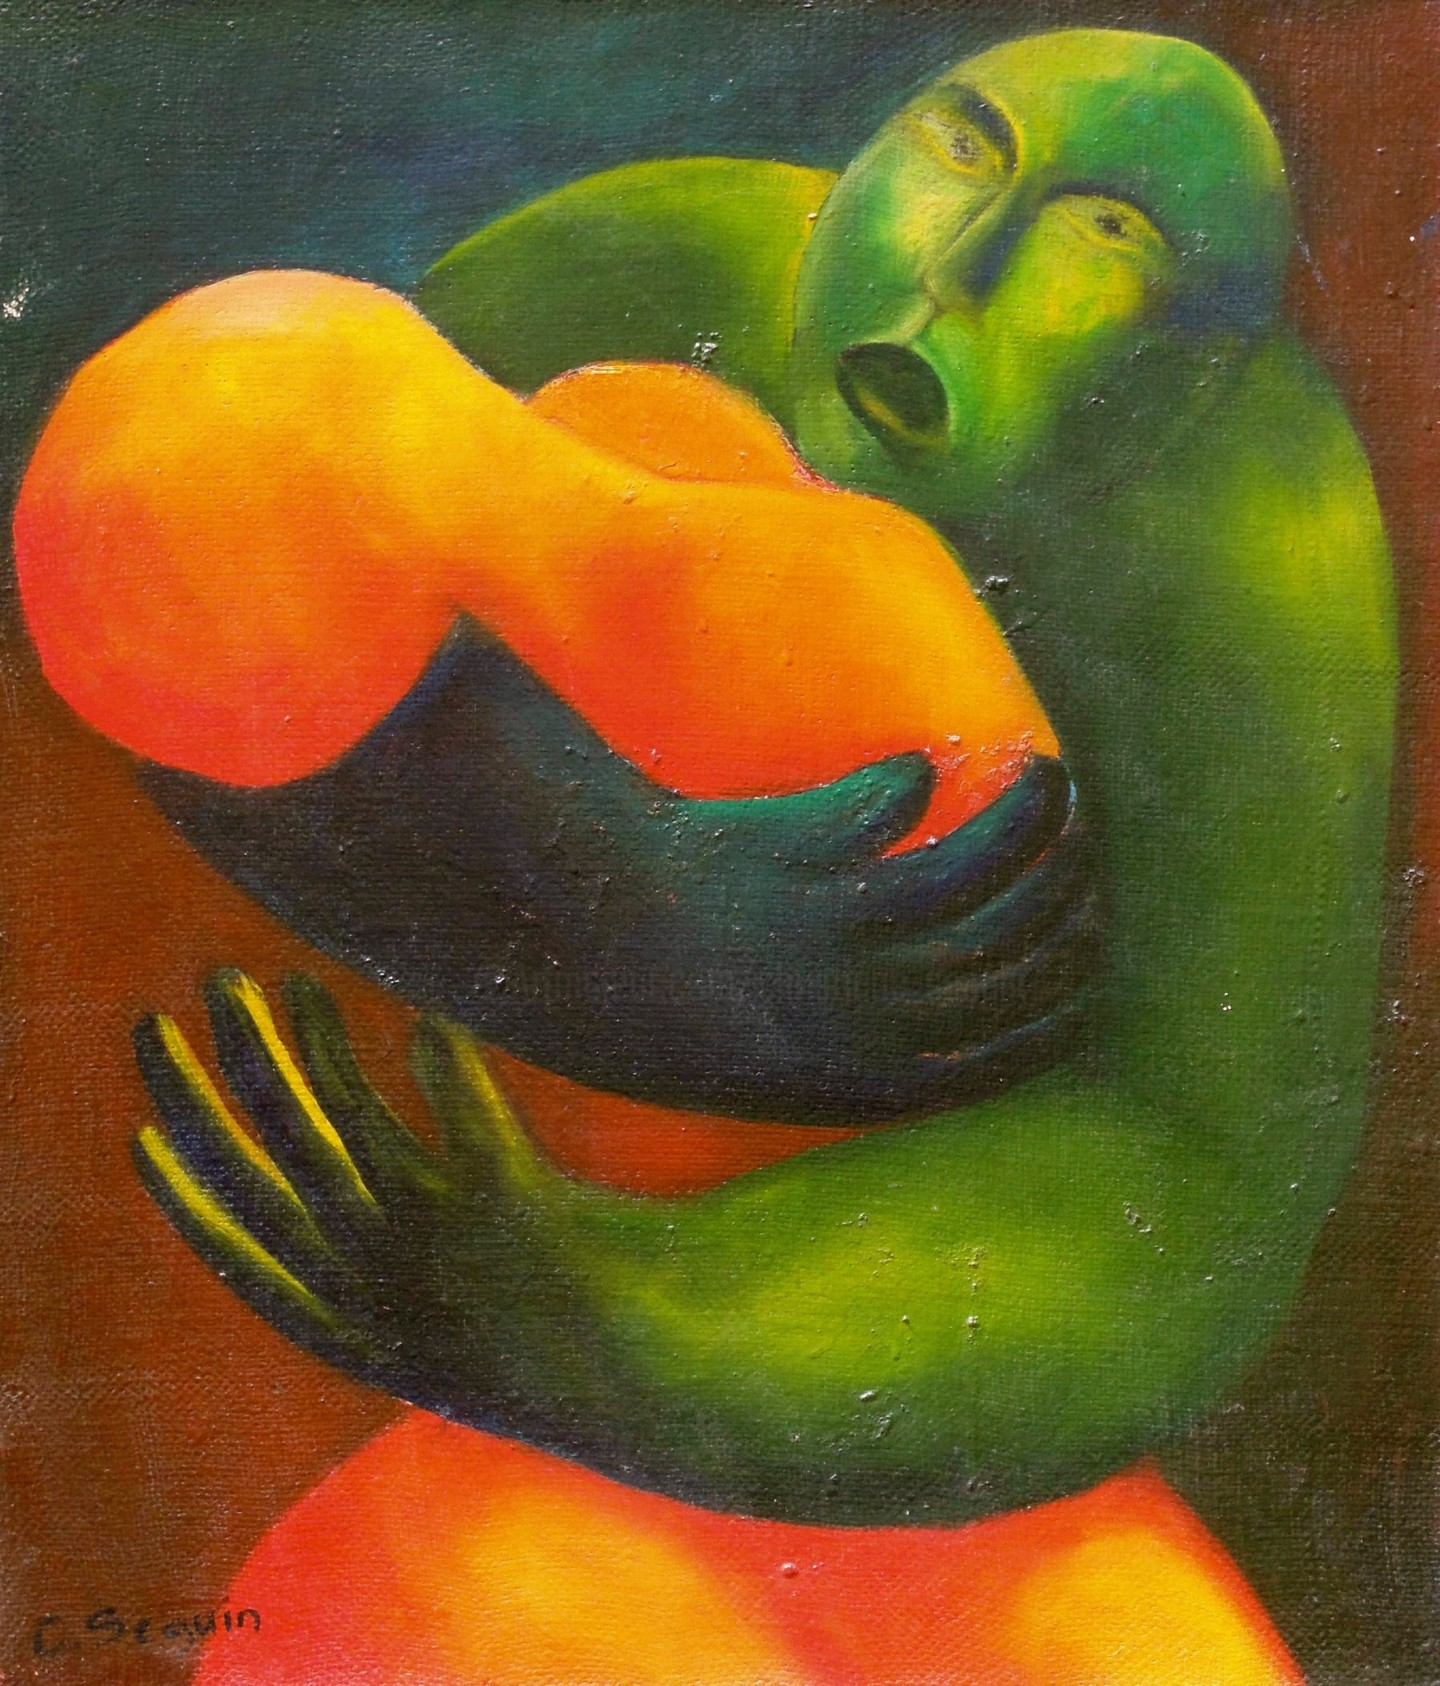 christiane seguin - Couple rouge + vert